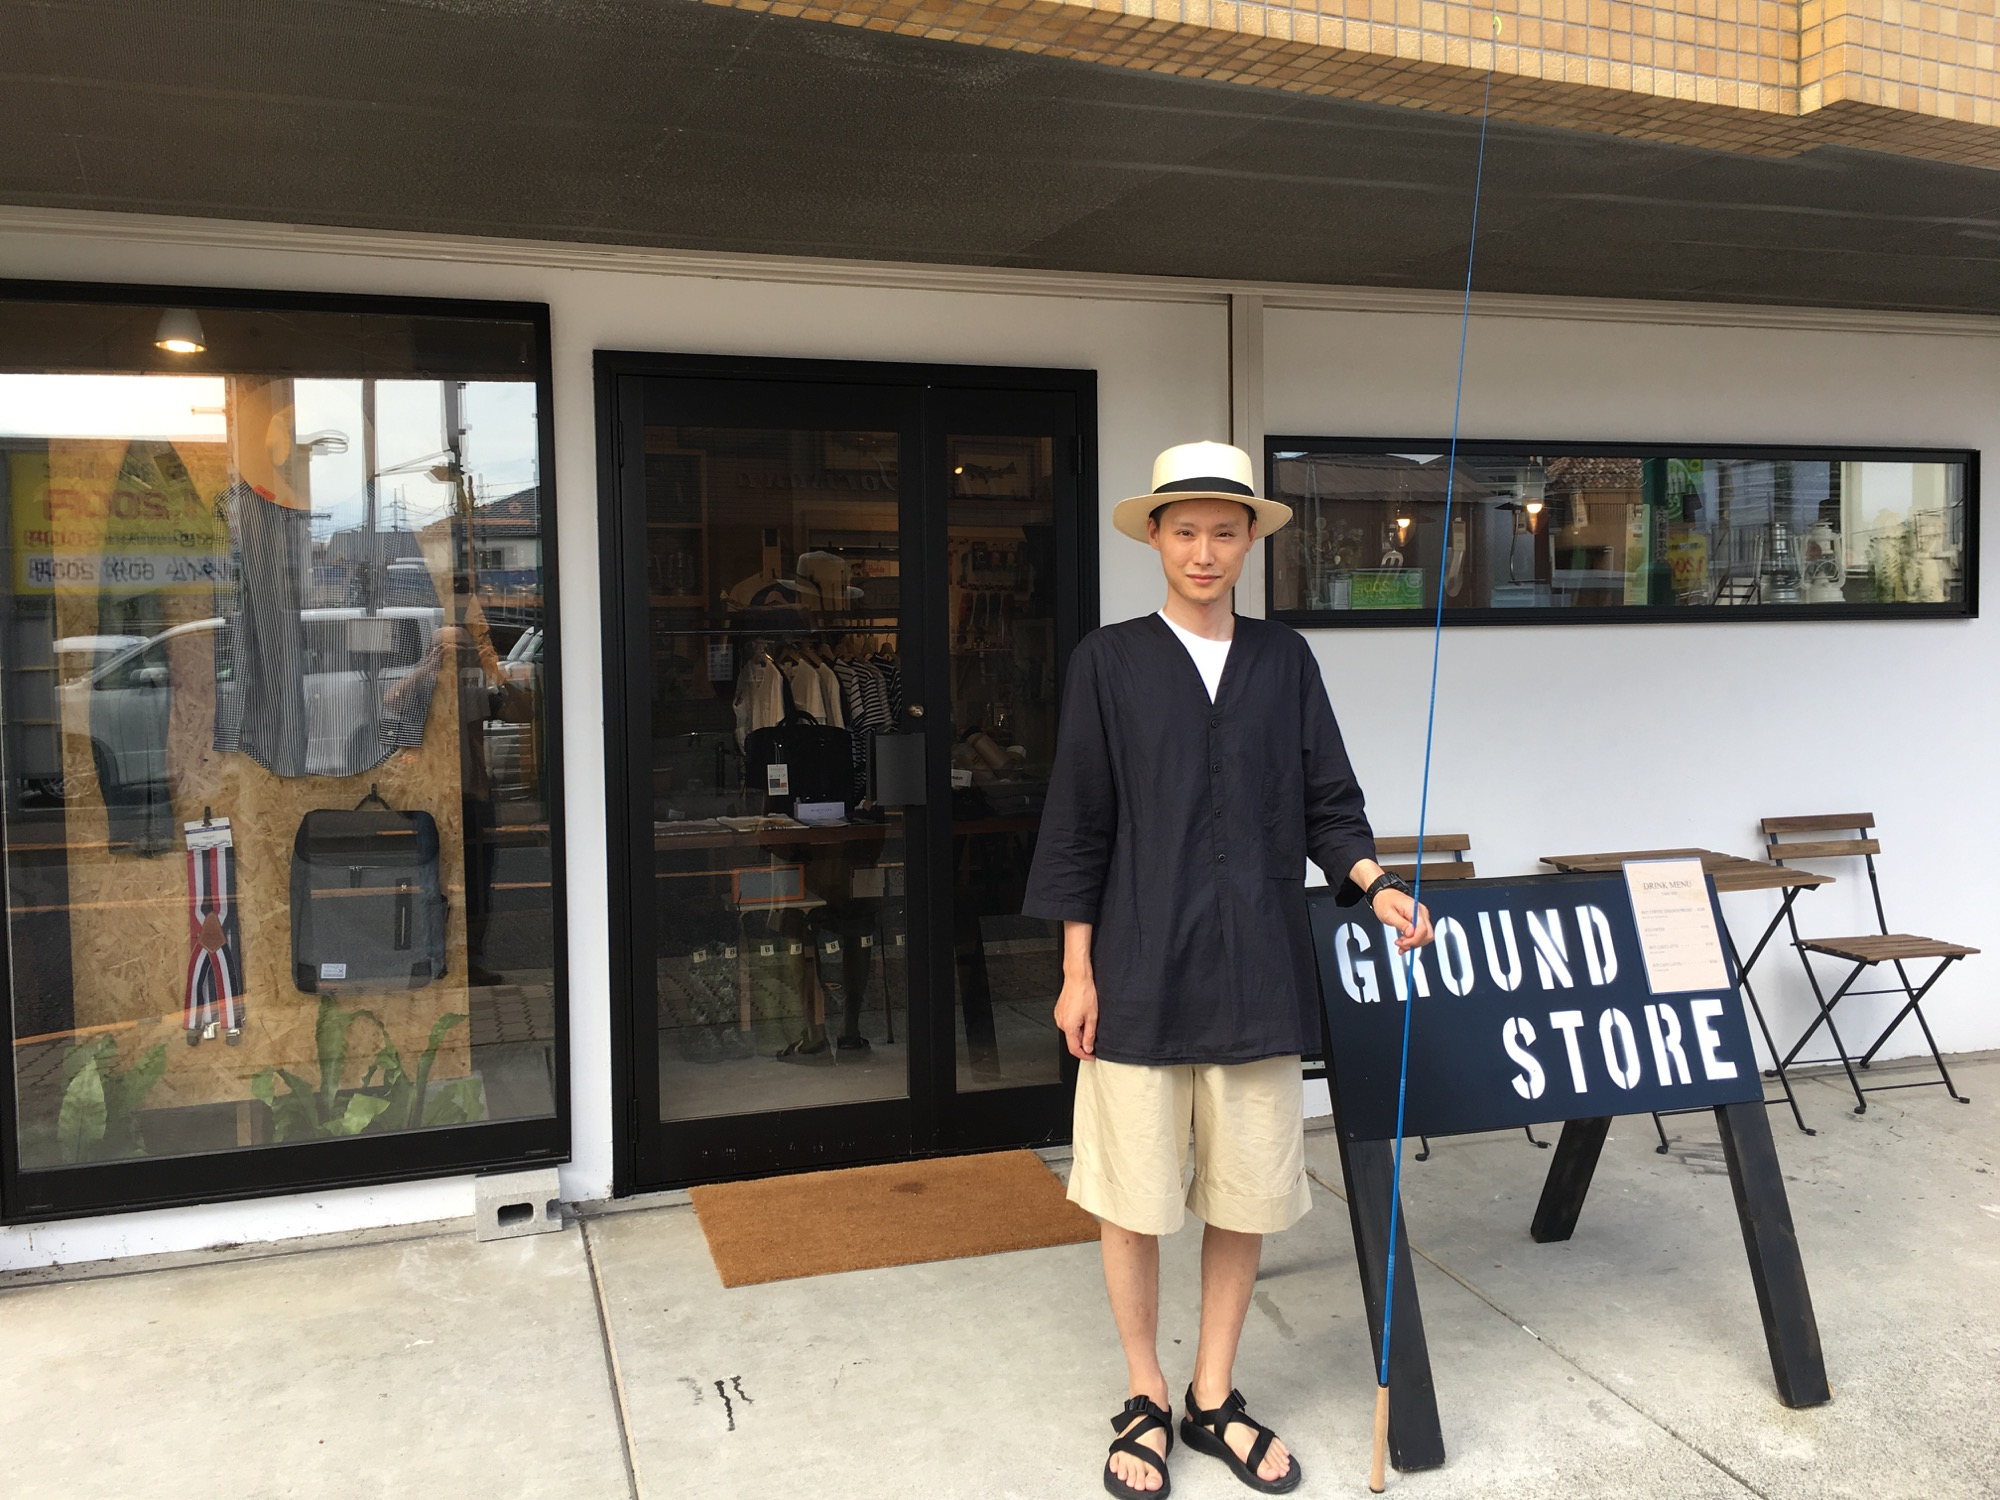 The owner out front of his shop